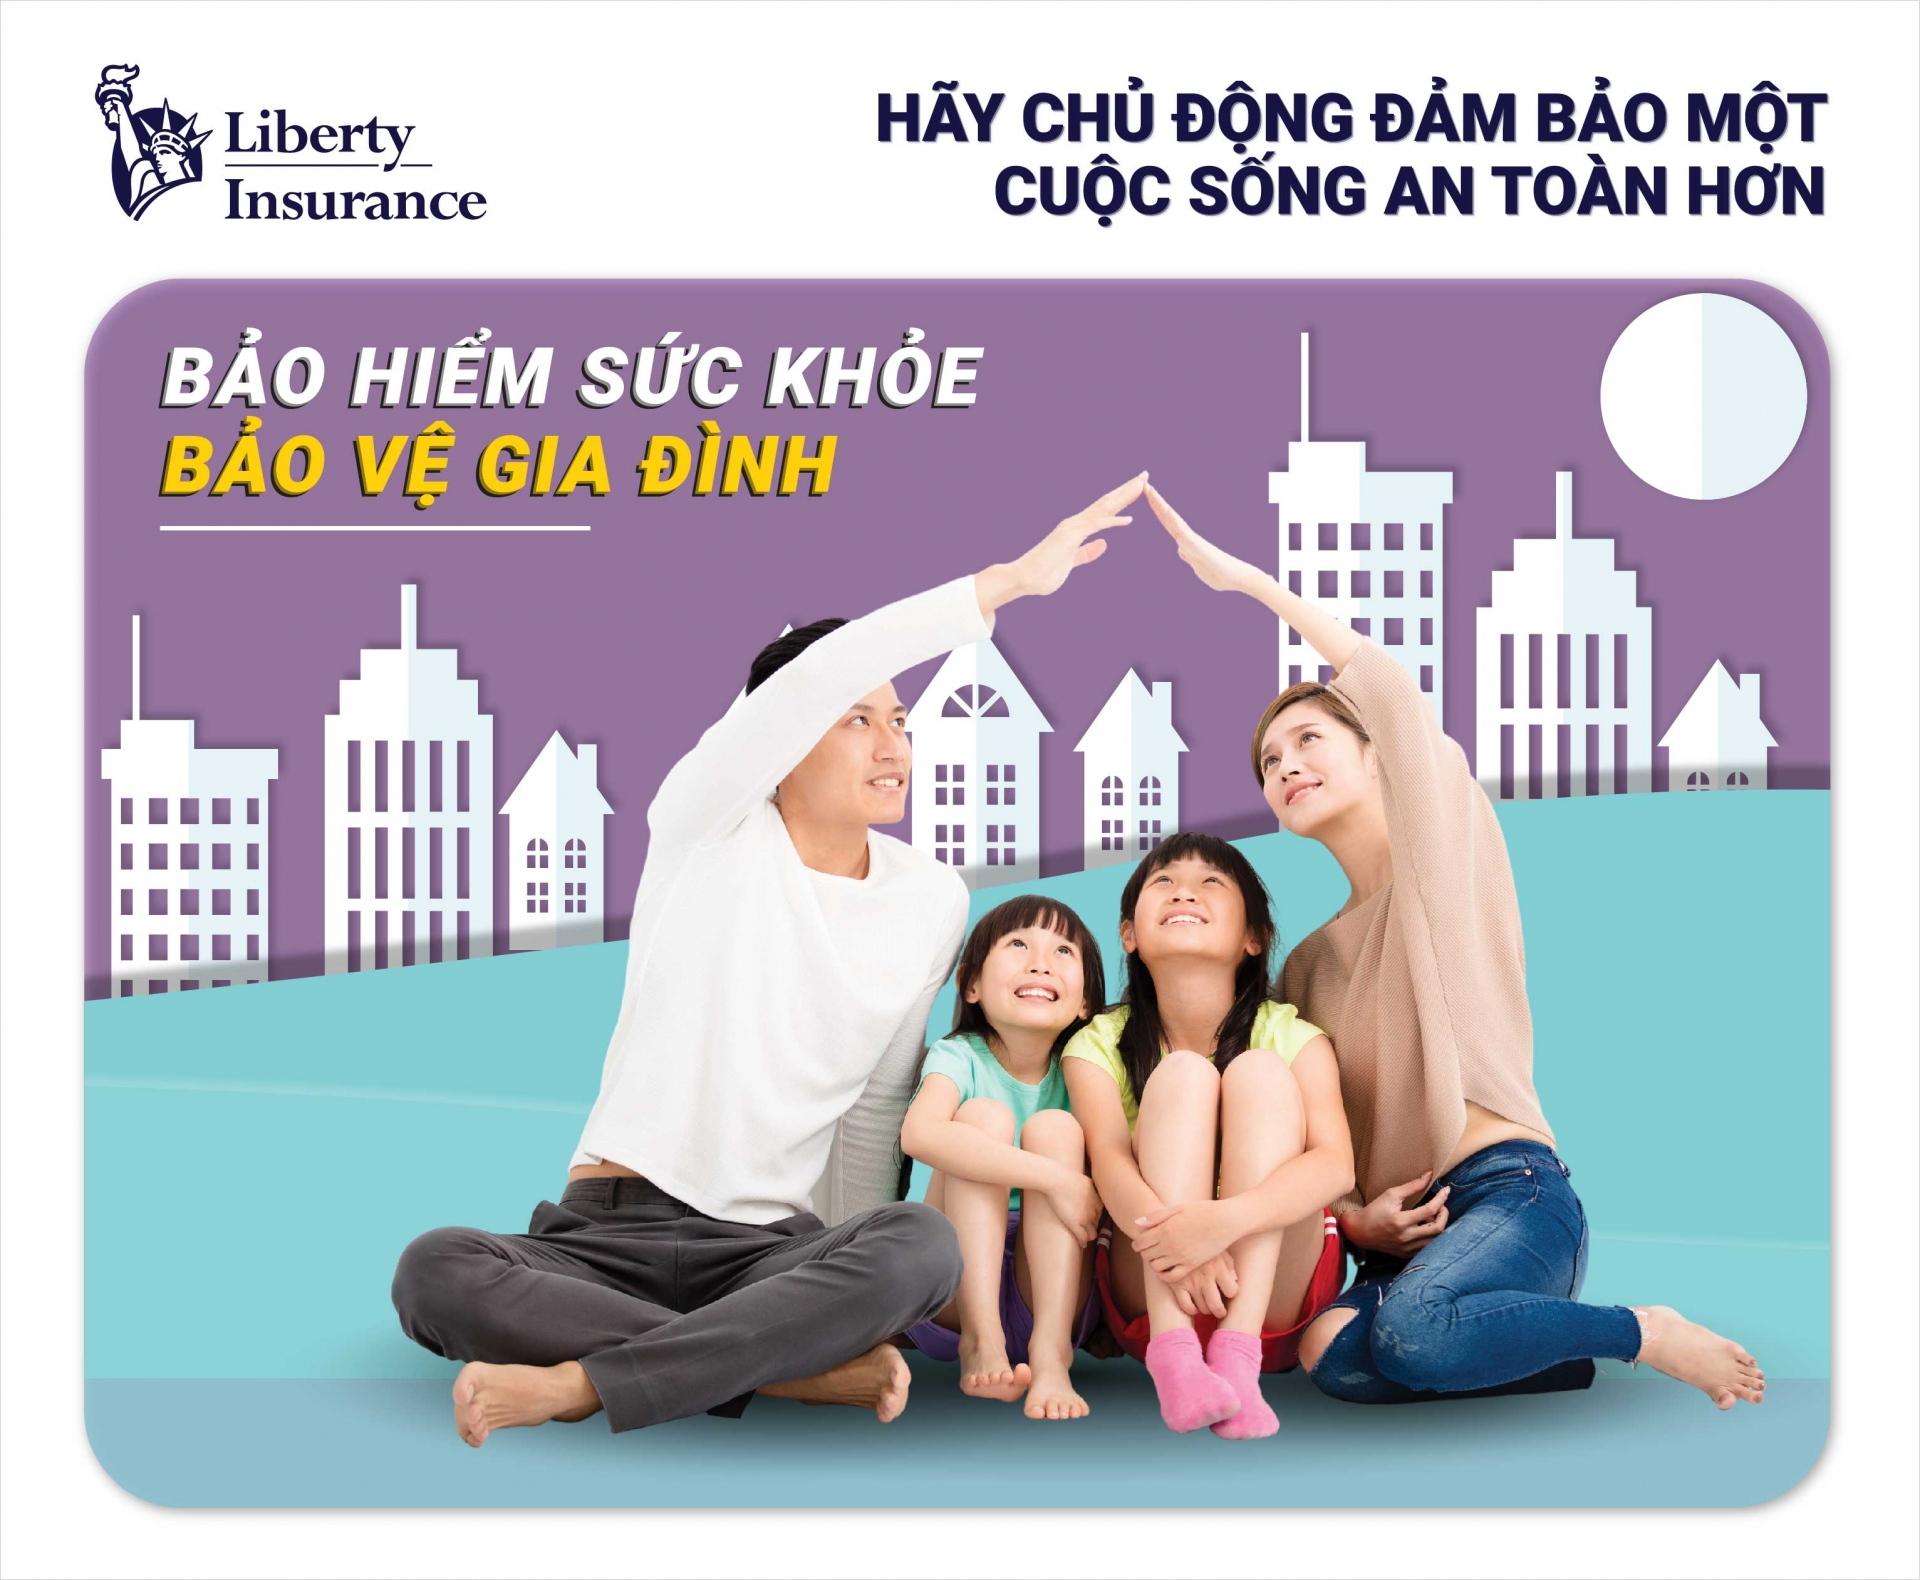 Liberty Insurance launches FamilyCare medical insurance for Vietnamese families